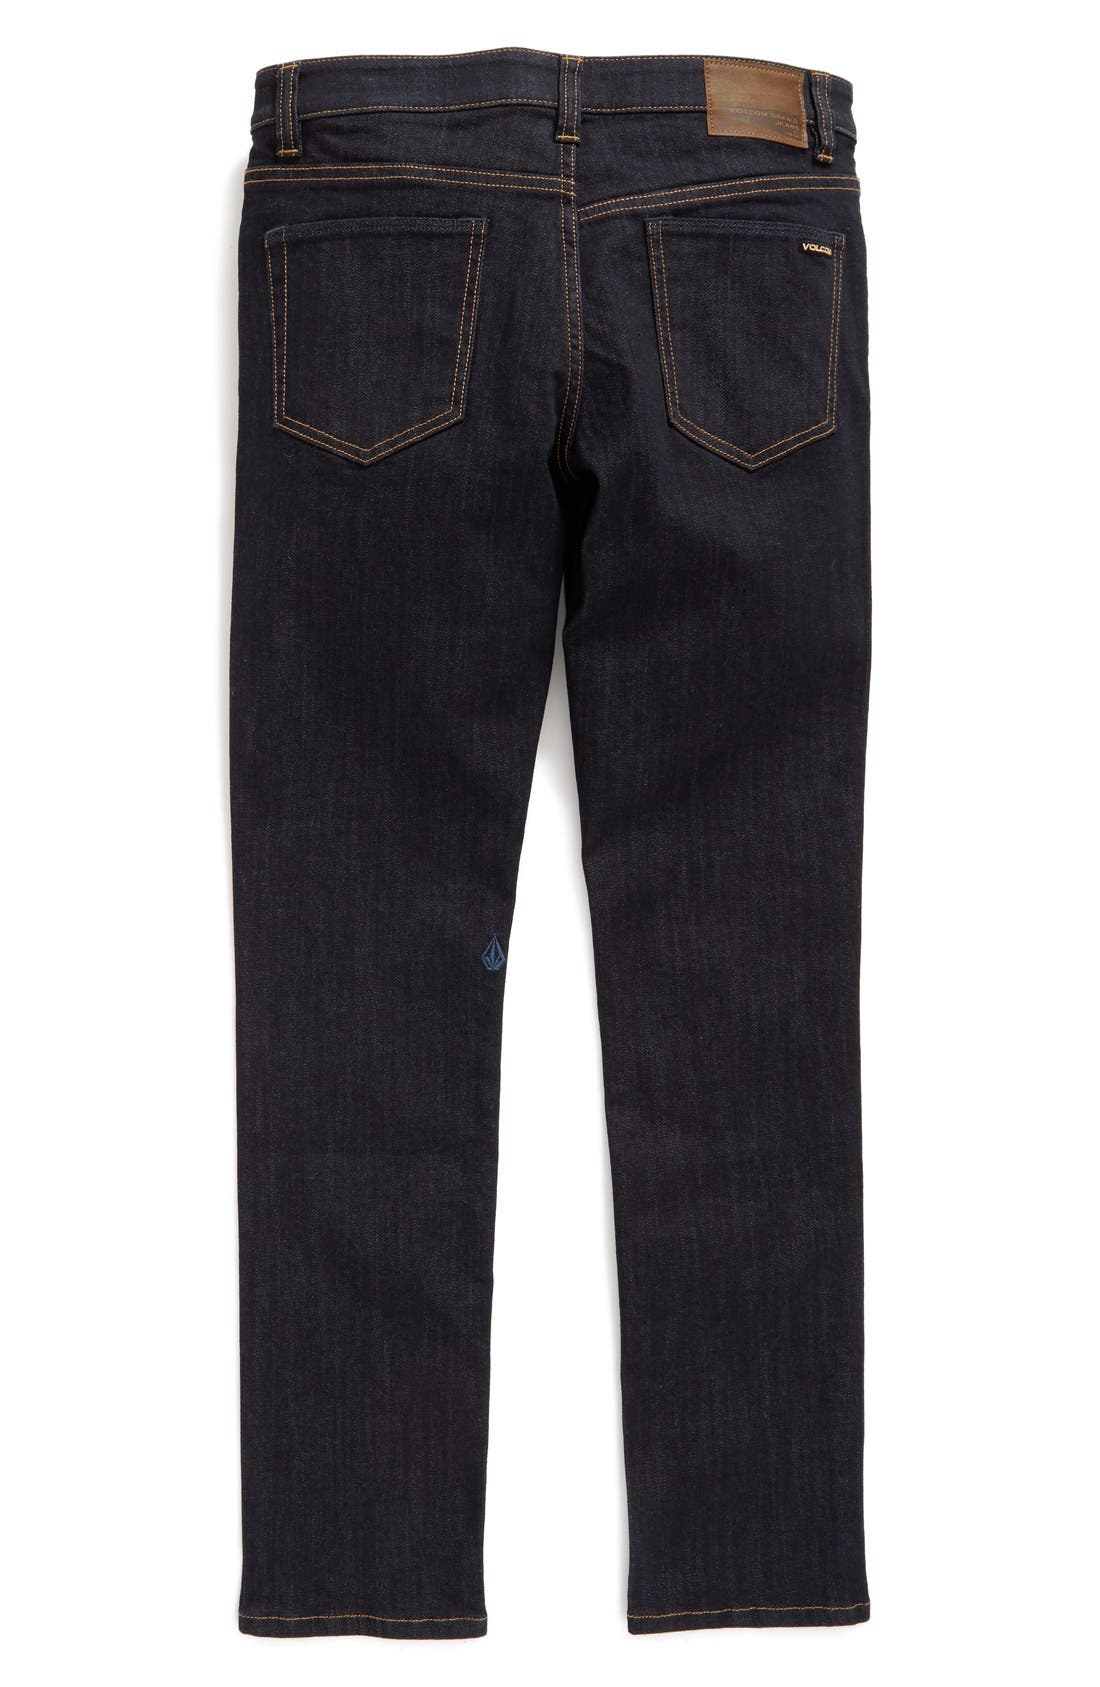 'Solver' Straight Leg Denim Jeans,                             Alternate thumbnail 2, color,                             BLUE RINSE